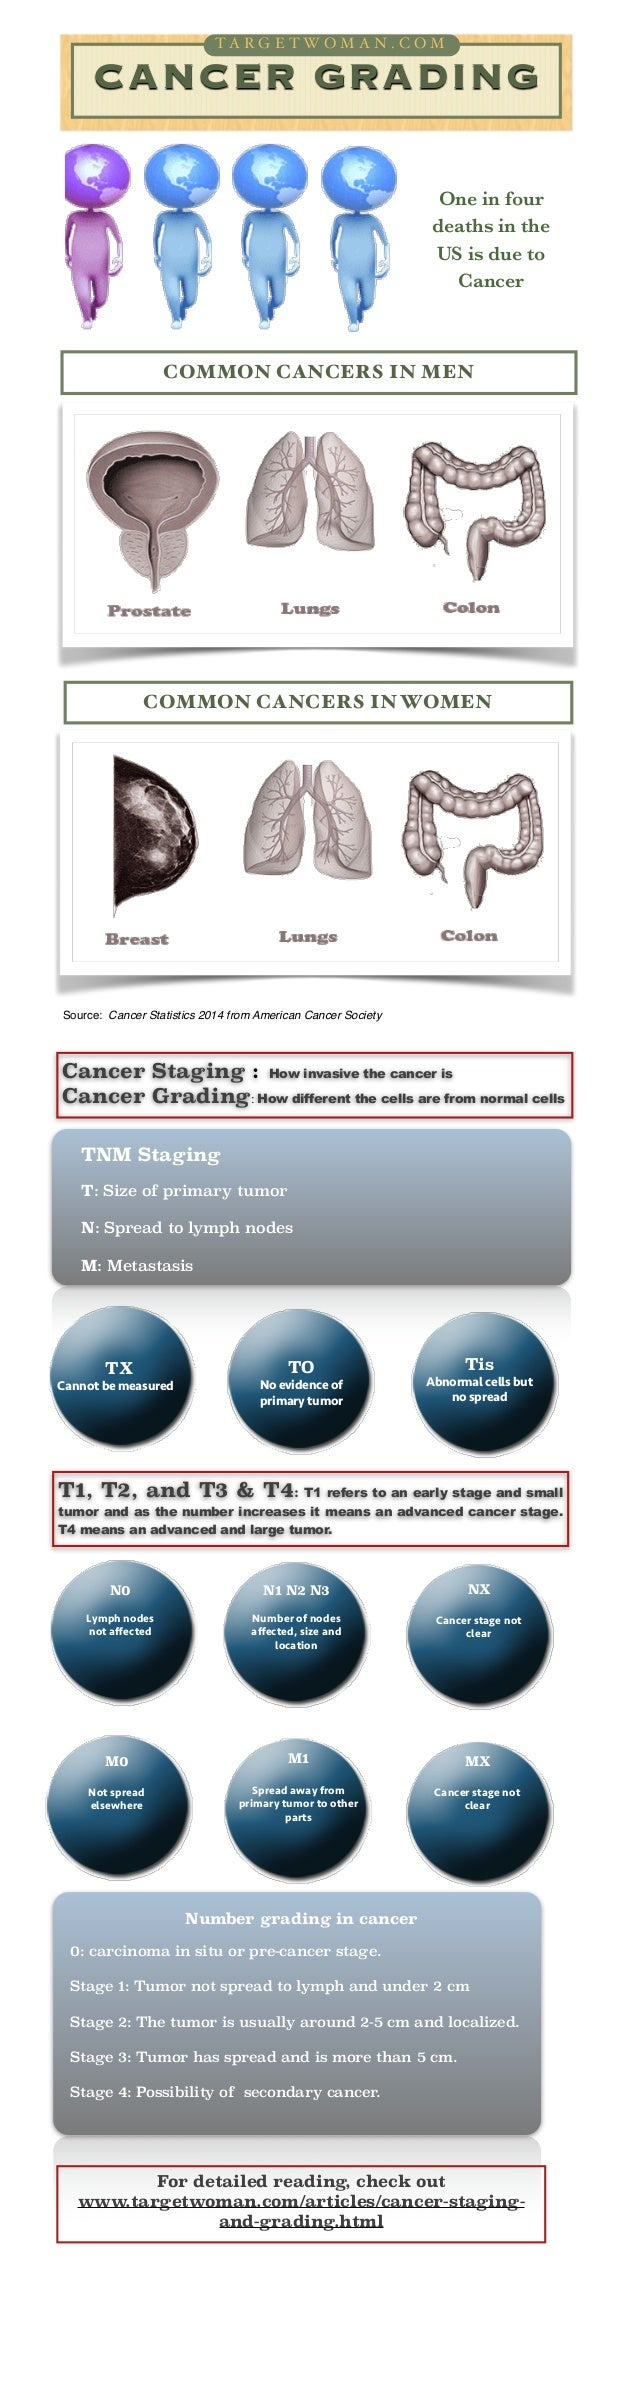 TA RG TWOMA A C C O T A R G EE T W O M N .N .O M M !  CANCER GRADING ! ! !  One in four deaths in the US is due to Cancer ...